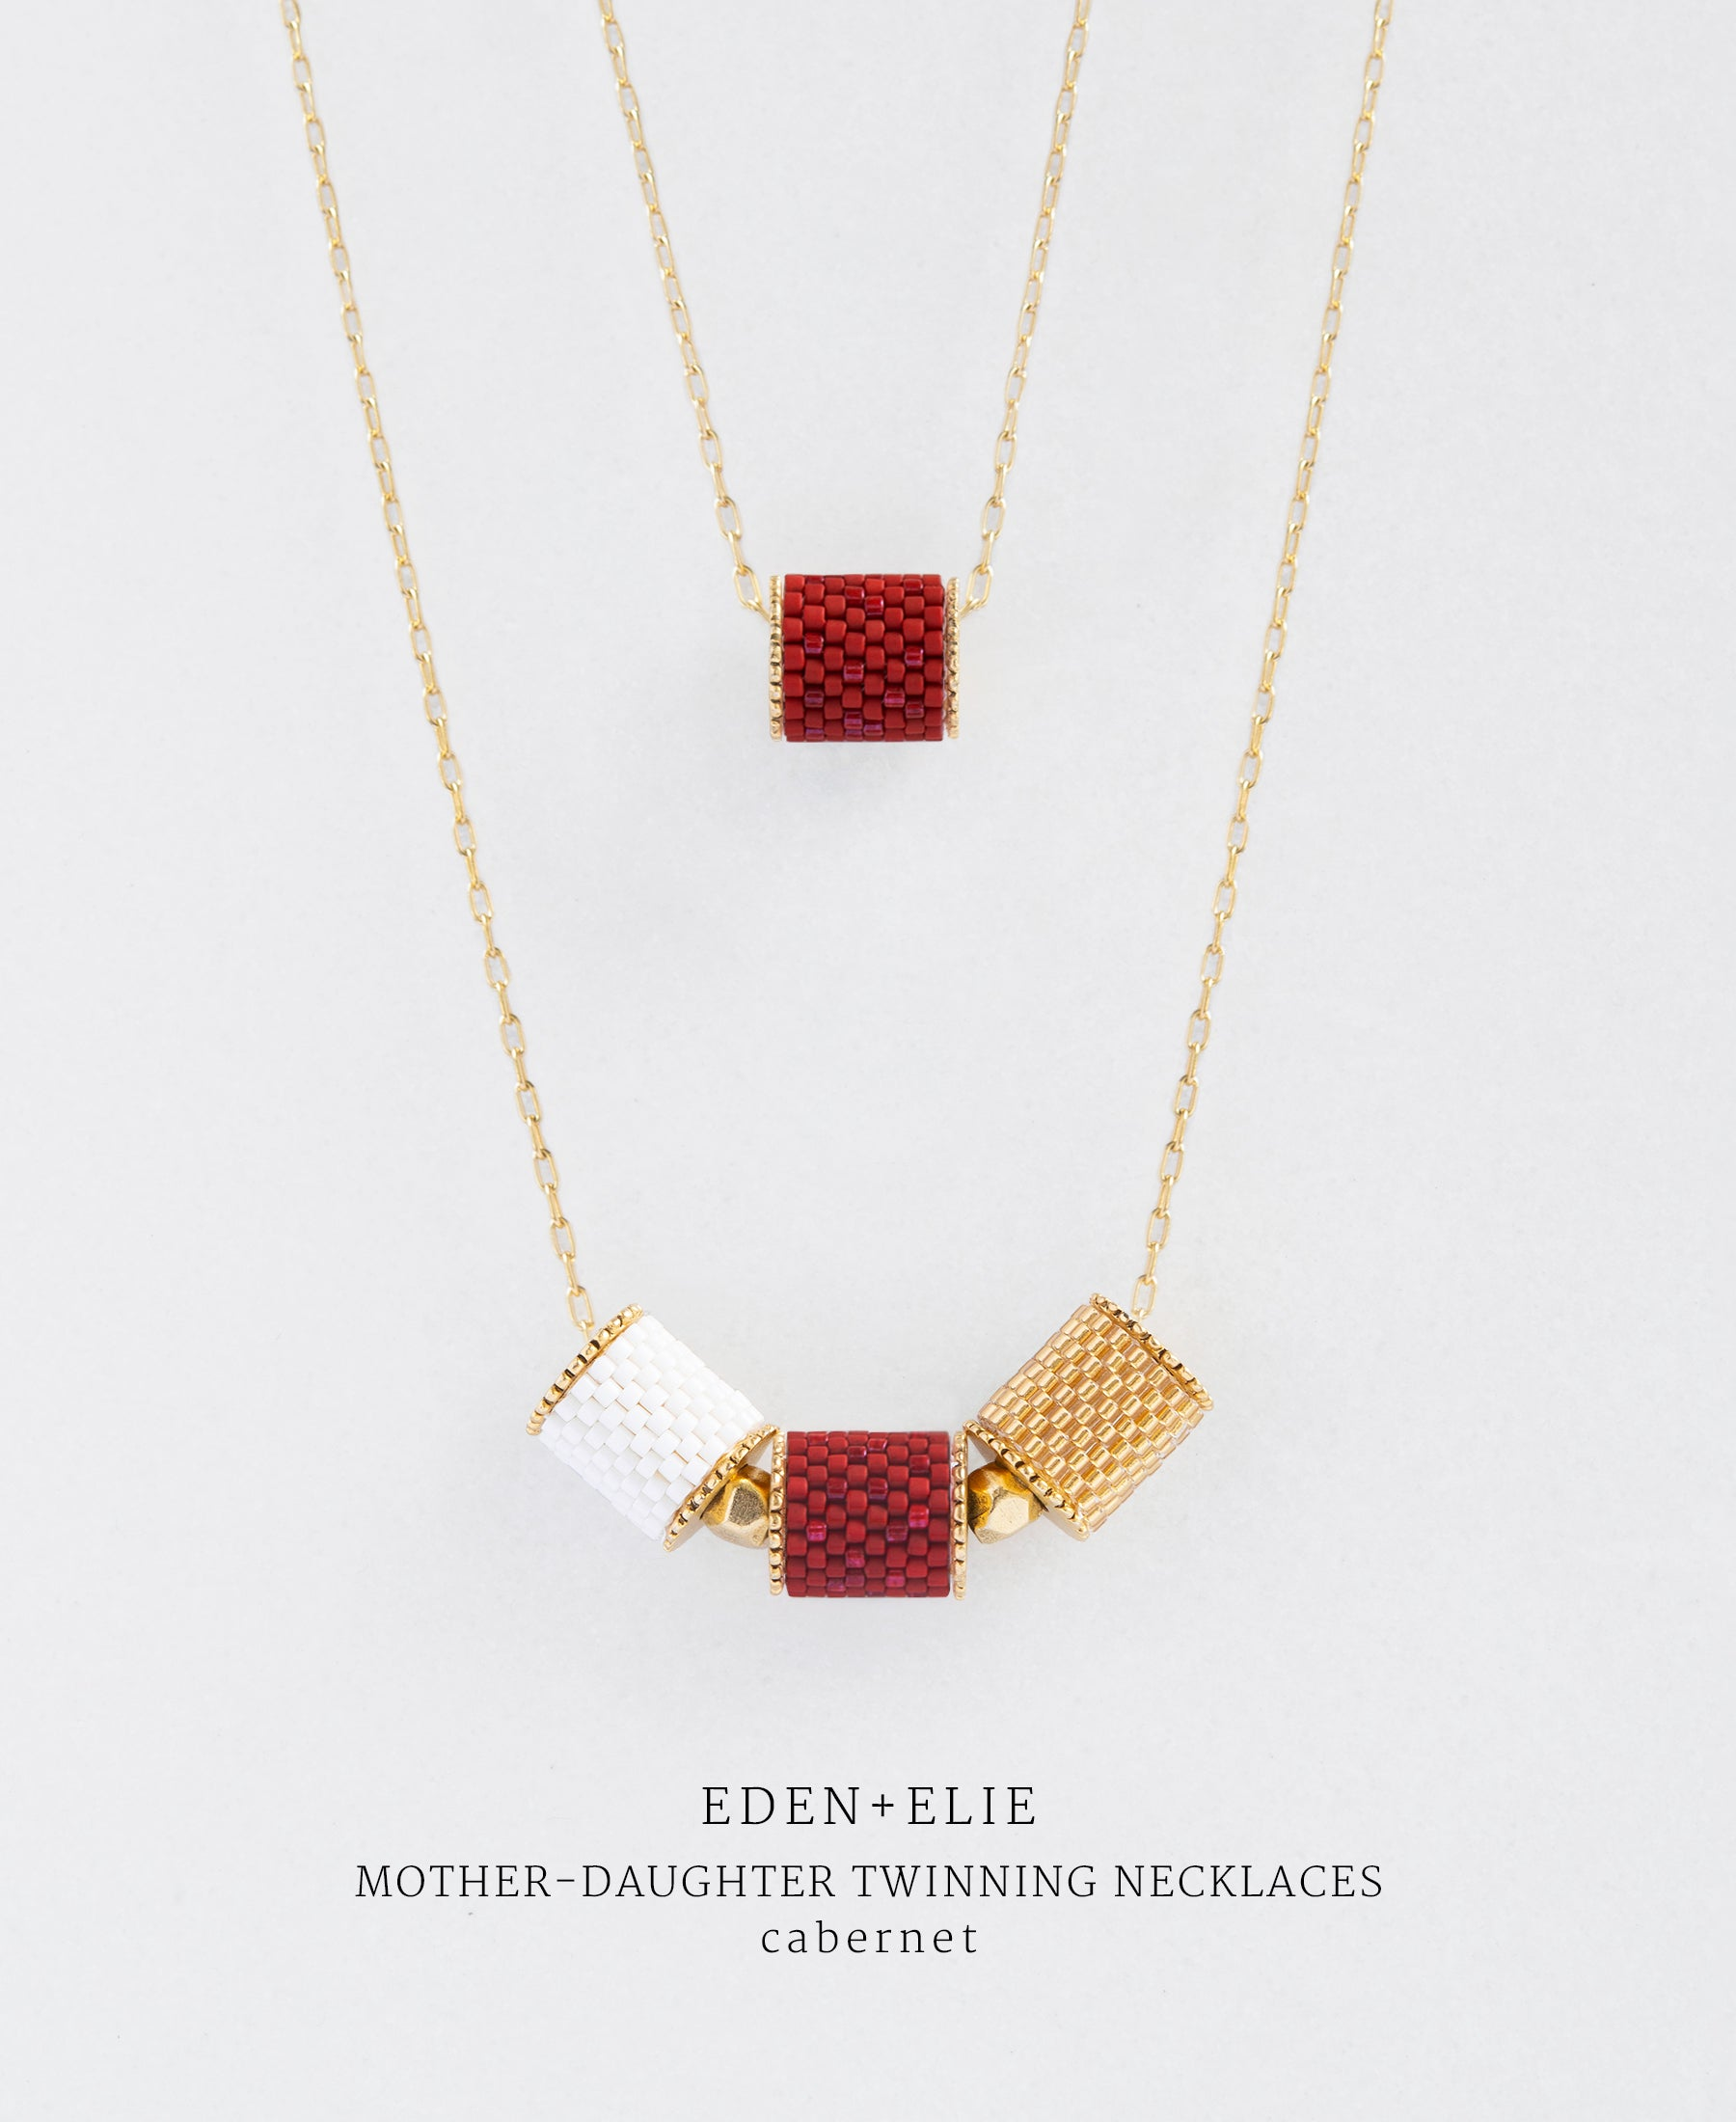 EDEN + ELIE Mother-Daughter twinning necklaces set - cabernet red